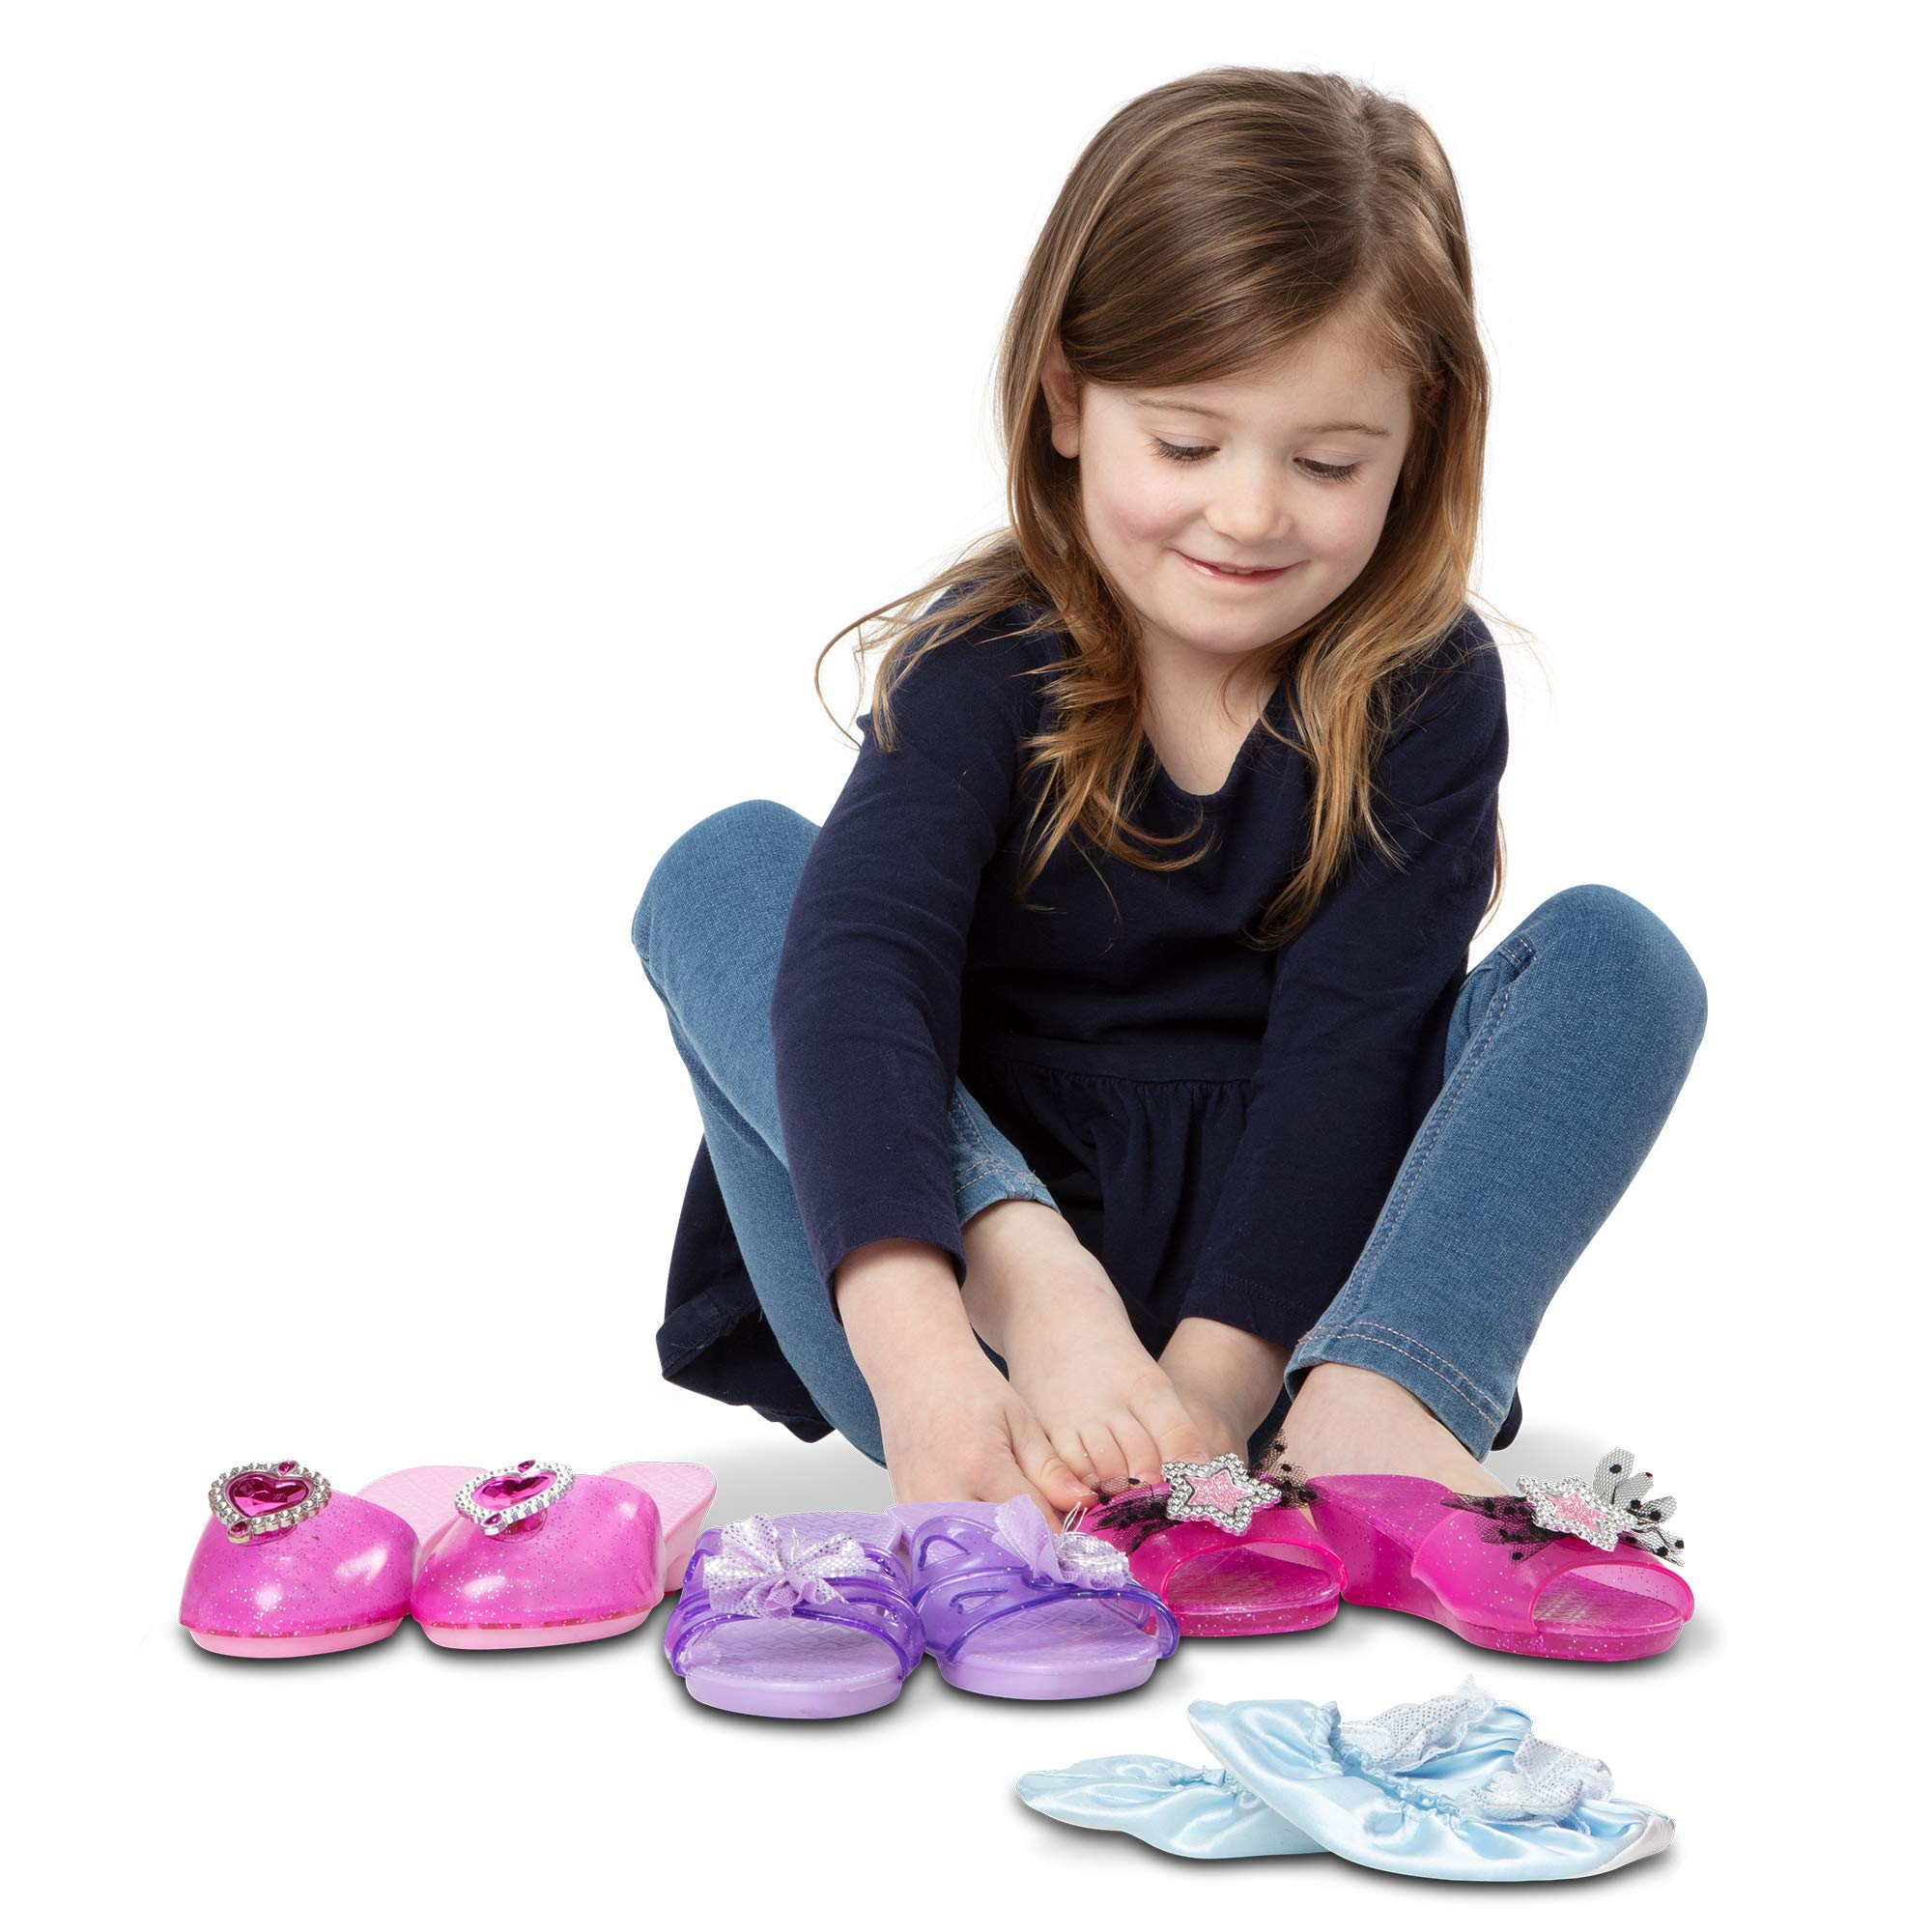 Melissa & Doug Role Play Collection, Step in Style! (Set of 4 Pairs, Frustration-Free Packaging, Great Gift for Girls and Boys - Best for 3, 4, and 5 Year Olds) by Melissa & Doug